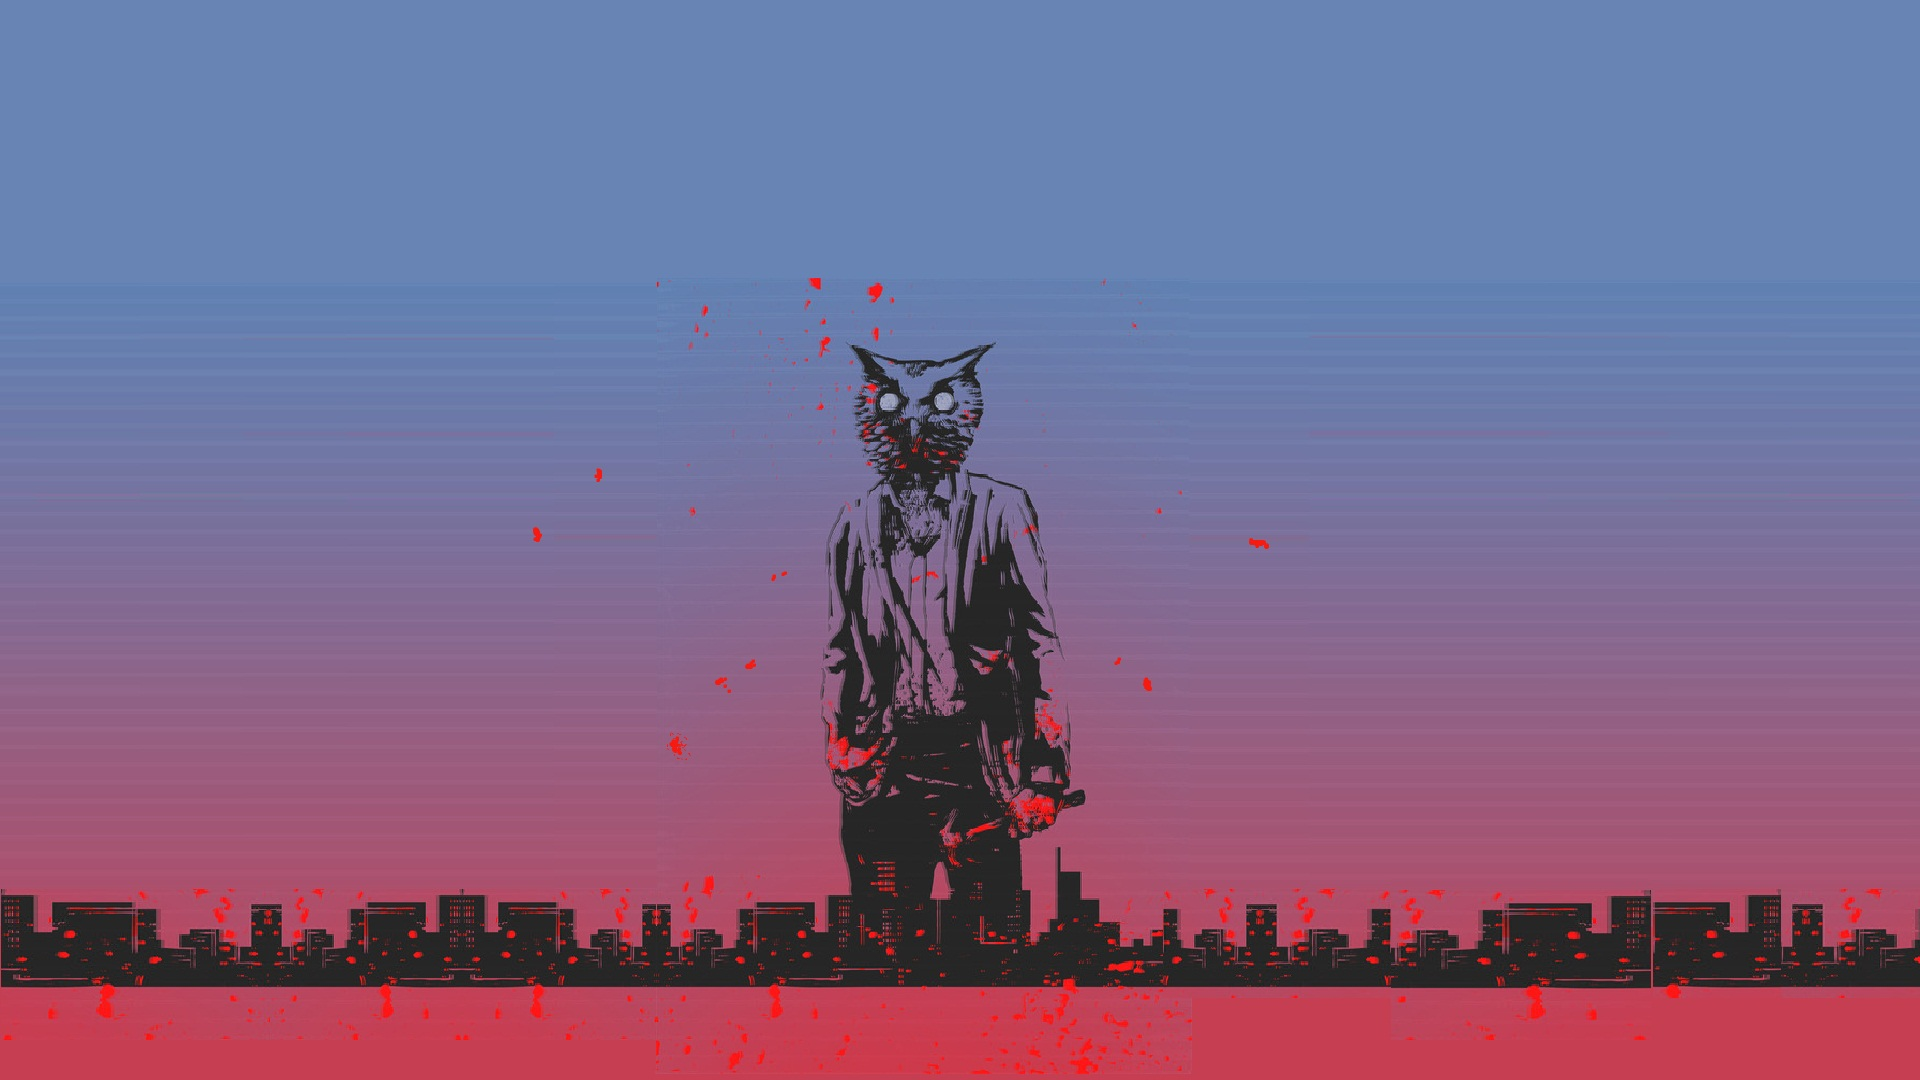 Hotline Miami 2 Wrong Number Hd Wallpaper Background